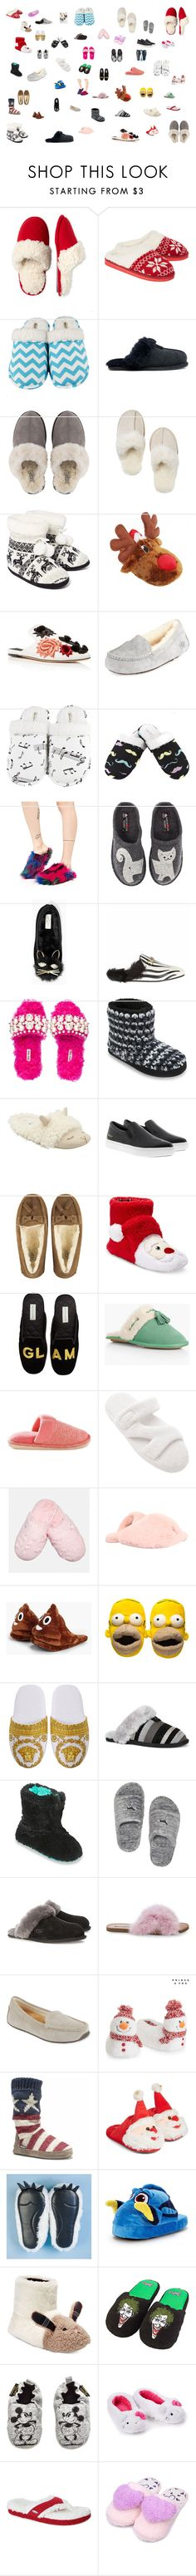 """""""My Slipper Collection 1"""" by molly2853 ❤ liked on Polyvore featuring Dearfoams, Hot Kiss, Leisureland, UGG, Sanayi 313, Lust For Life, Haflinger, Kate Spade, Gucci and Miu Miu"""